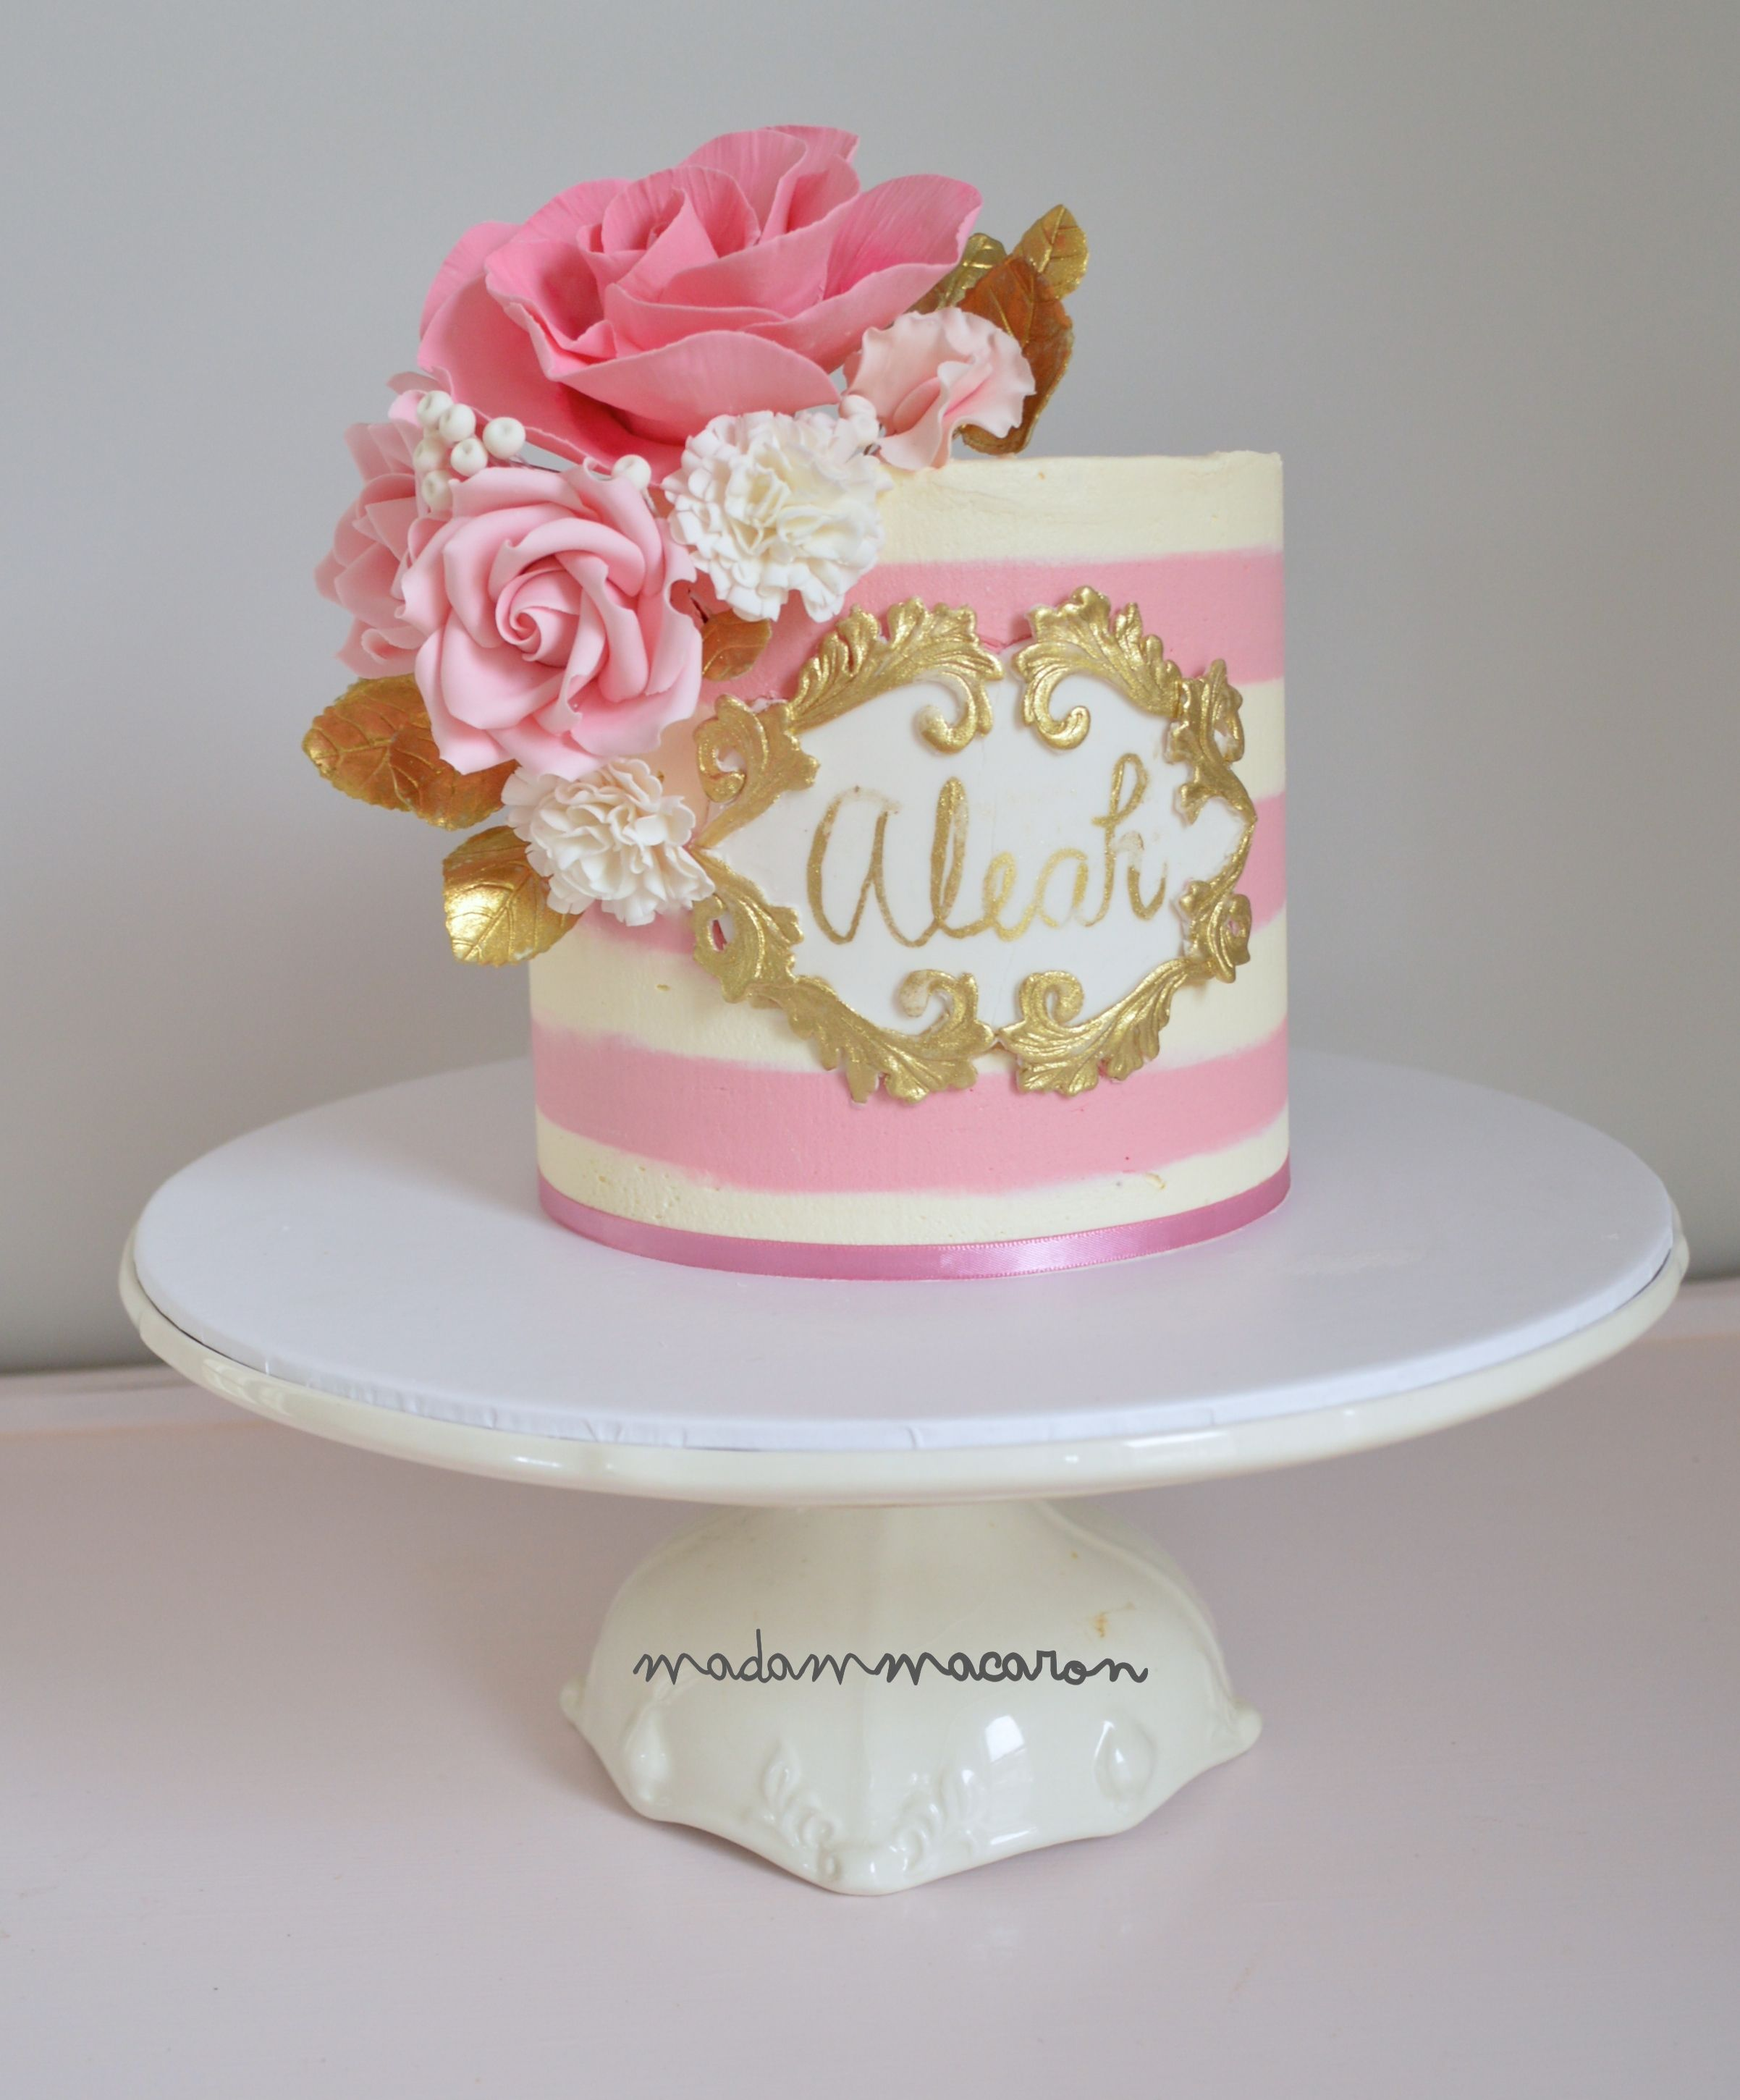 White and pink buttercream striped cake with a hand painted name white and pink and gold buttercream striped cake with a hand painted name plaque and pink gold and white sugar flowers dhlflorist Image collections